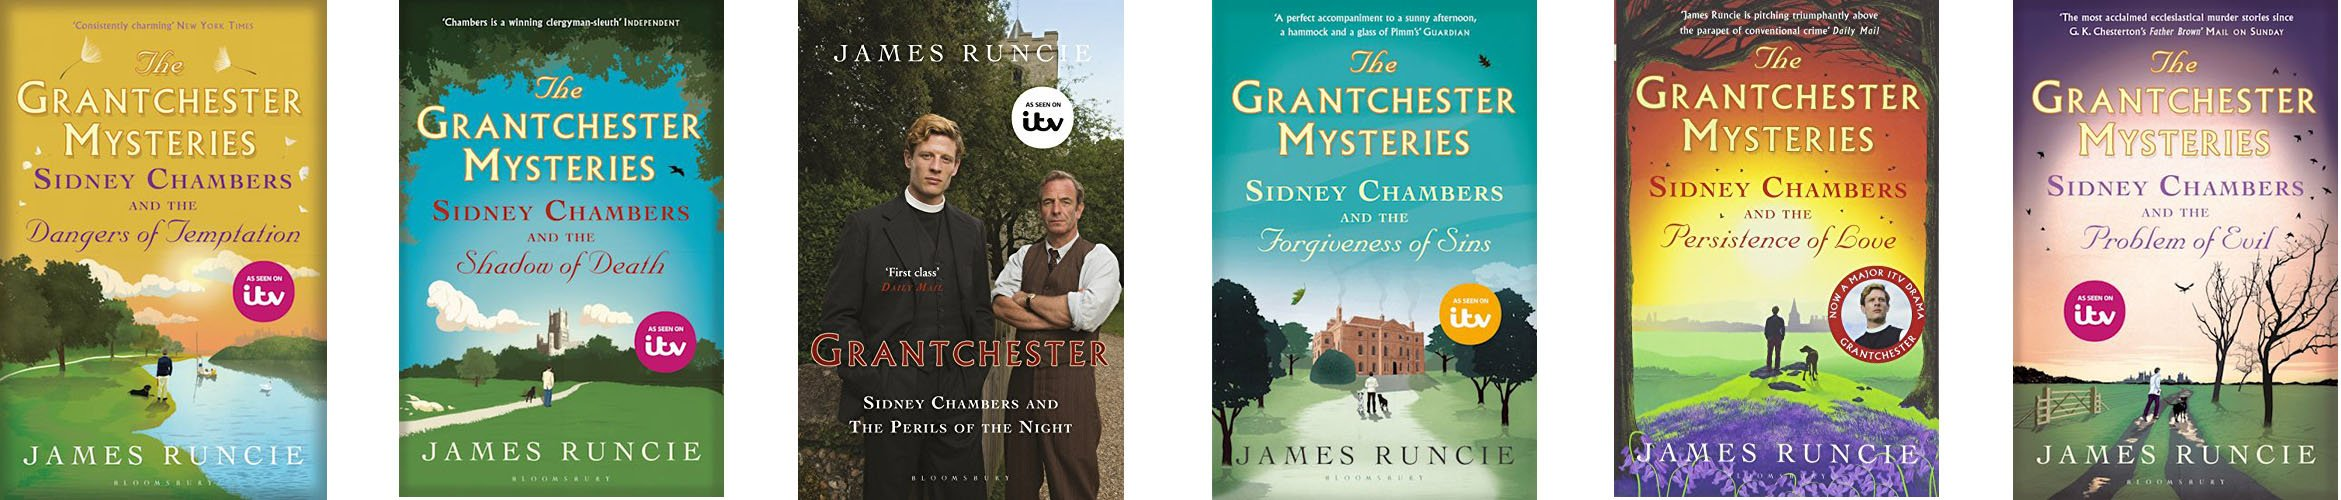 Image Shows a selection of book covers from the Grantchester series